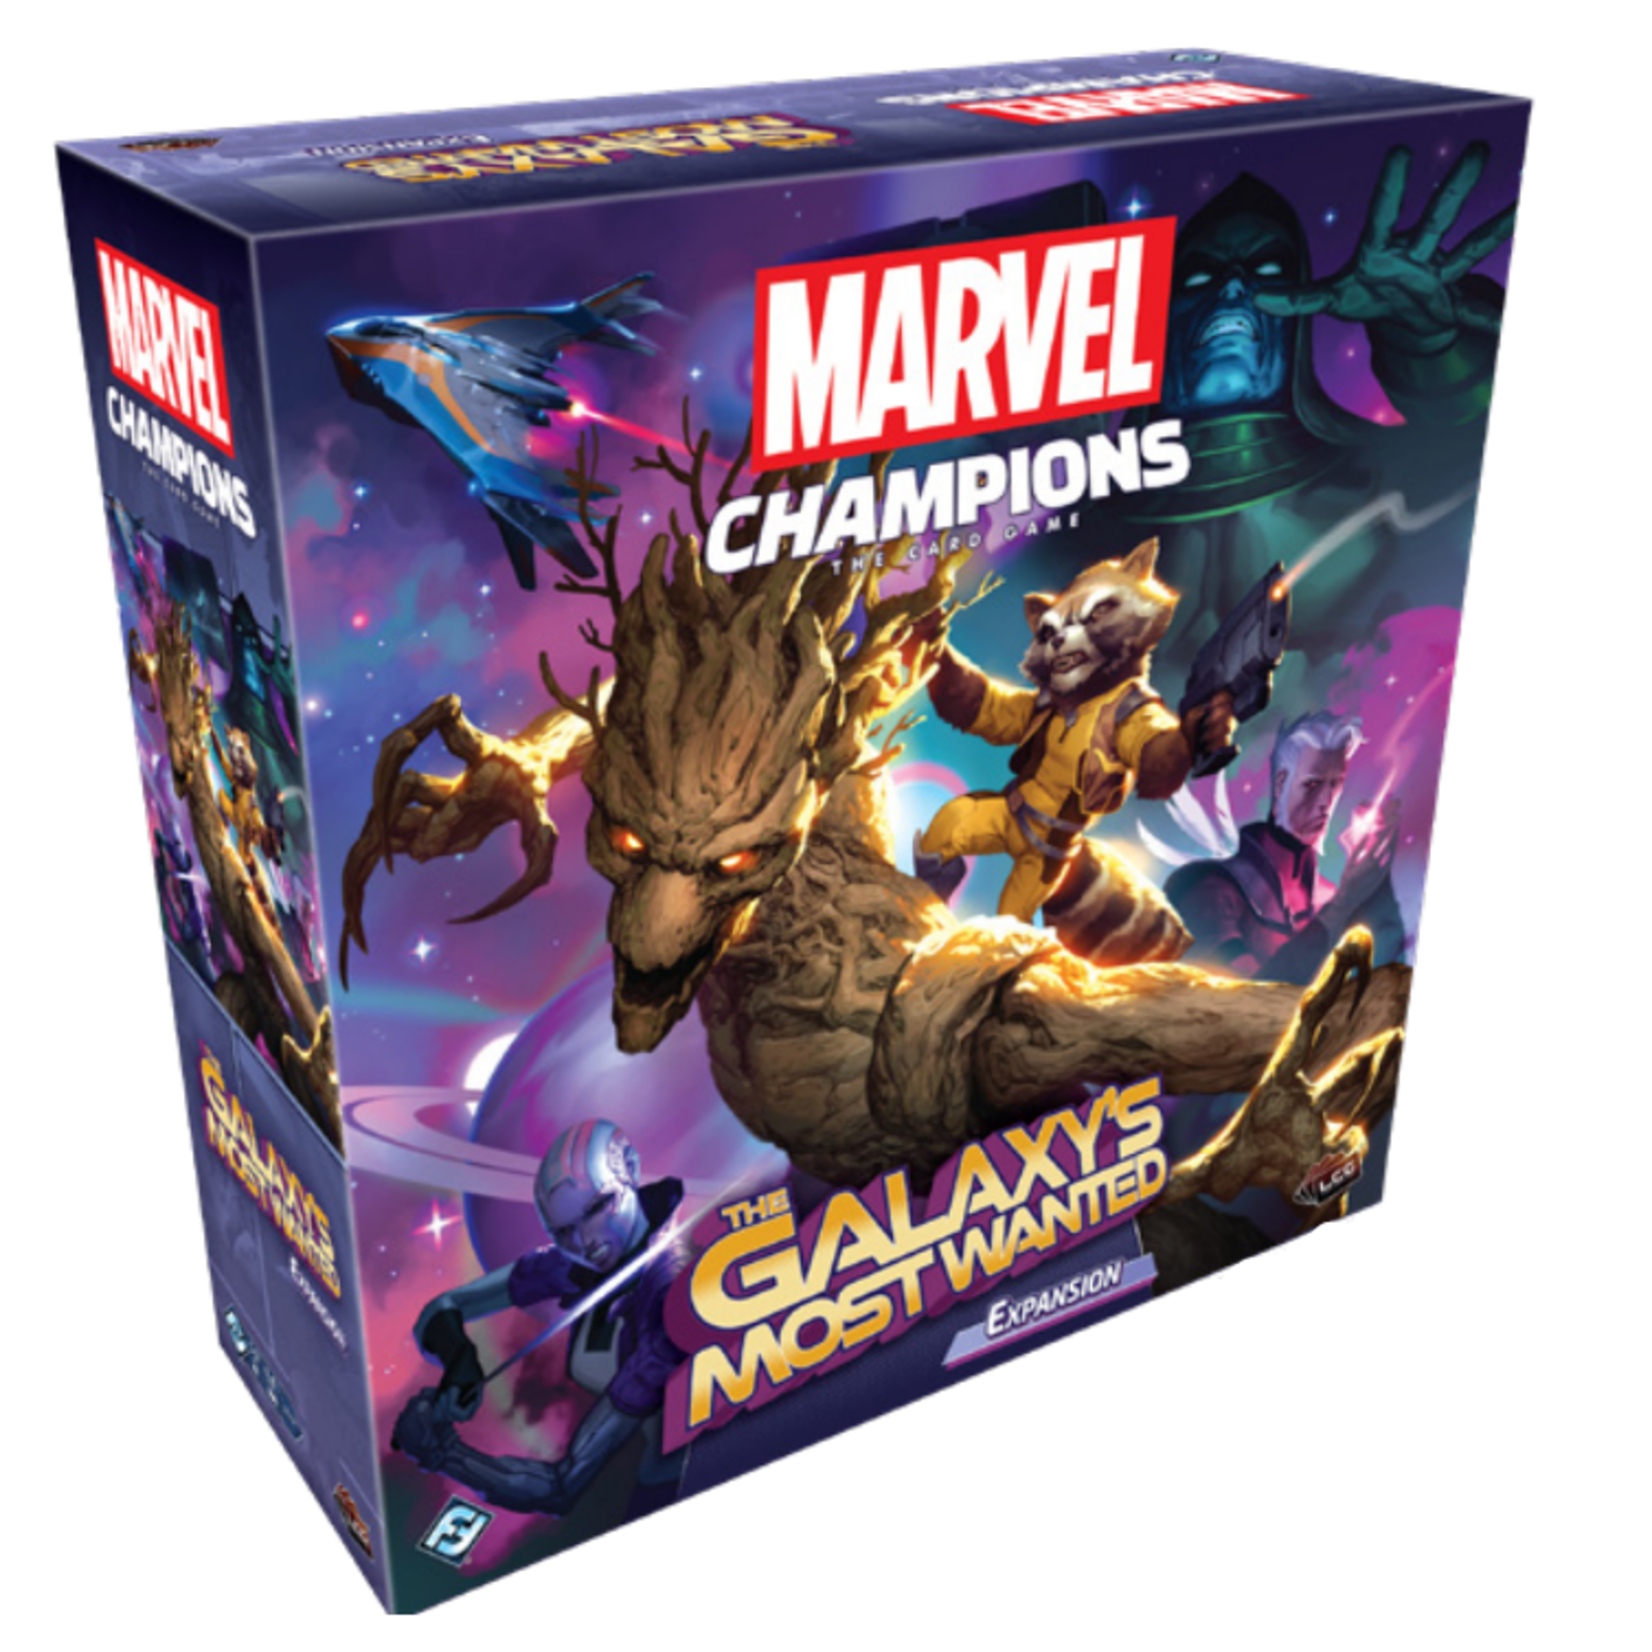 Marvel Champions Living Card Game: The Galaxies Most Wanted